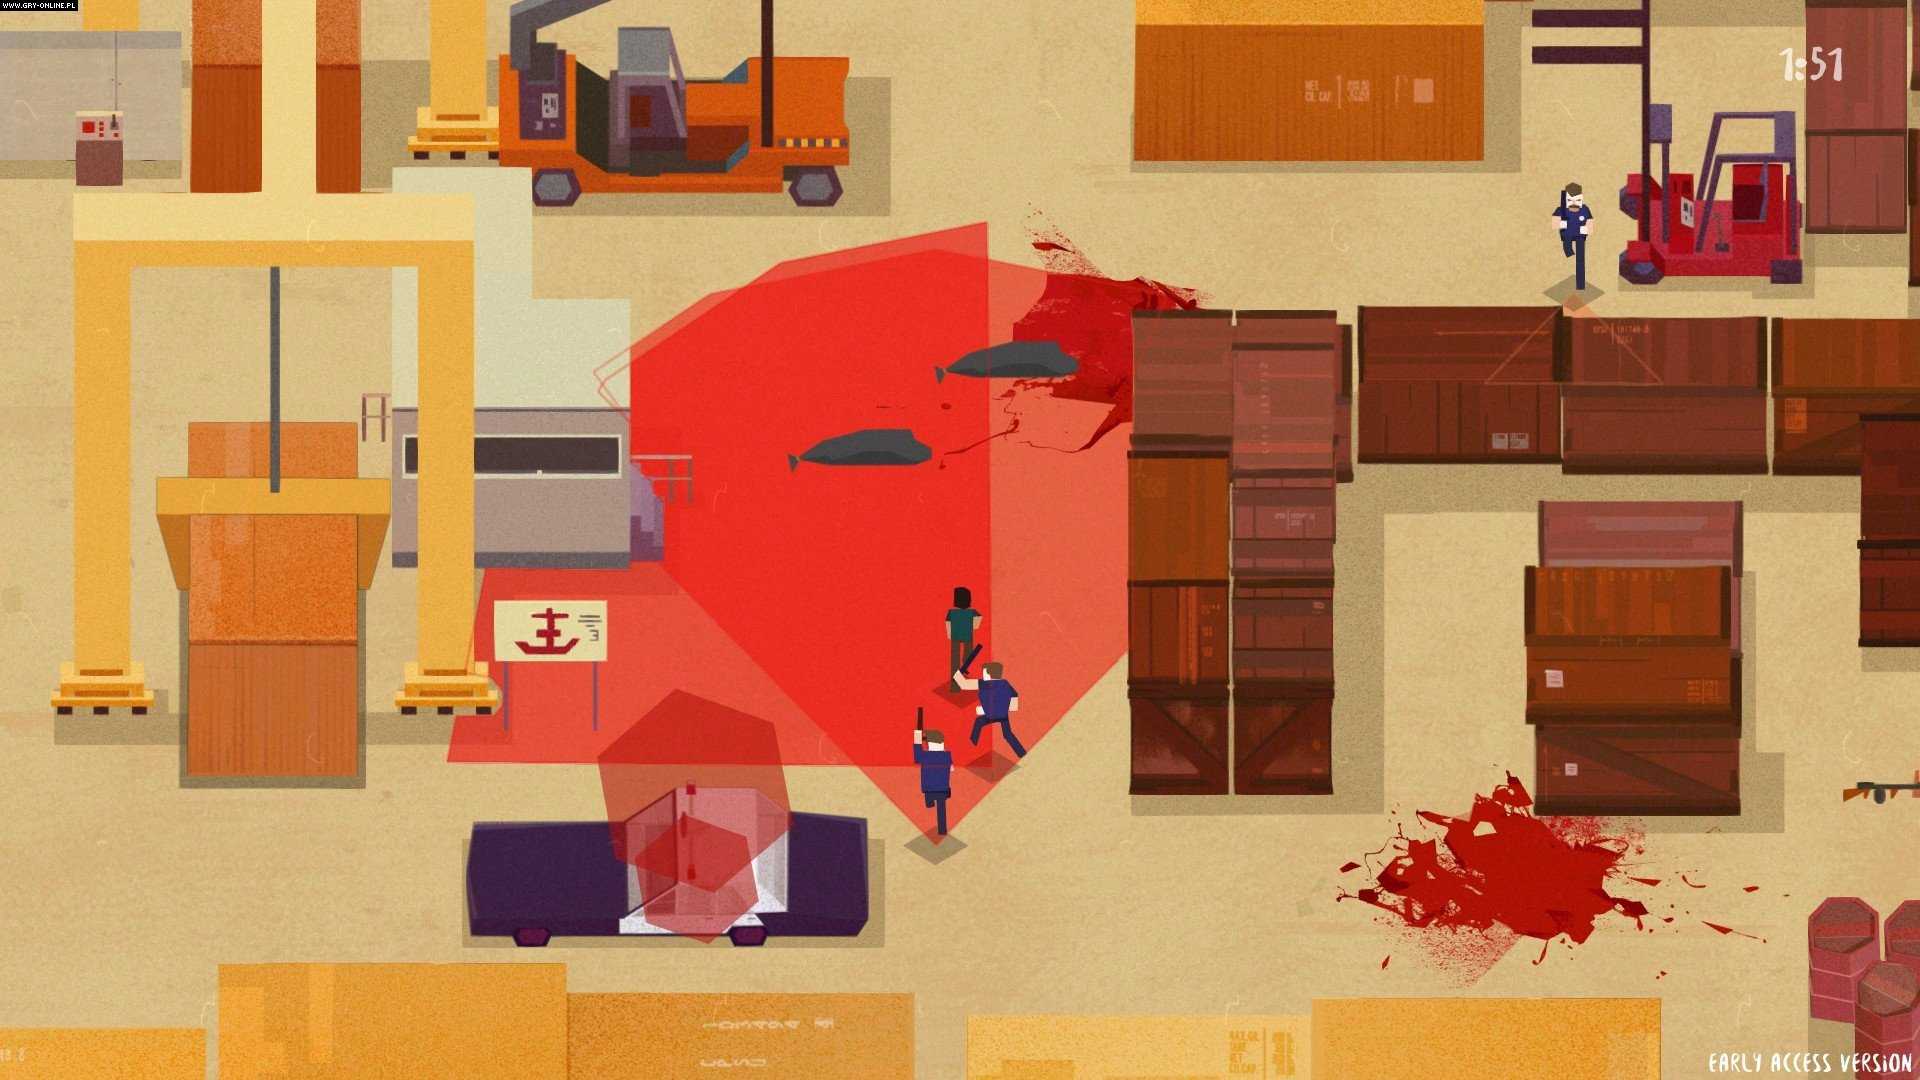 Serial Cleaner PC, PS4, XONE, Switch Gry Screen 5/28, iFun4all / Draw Distance, Curve Digital